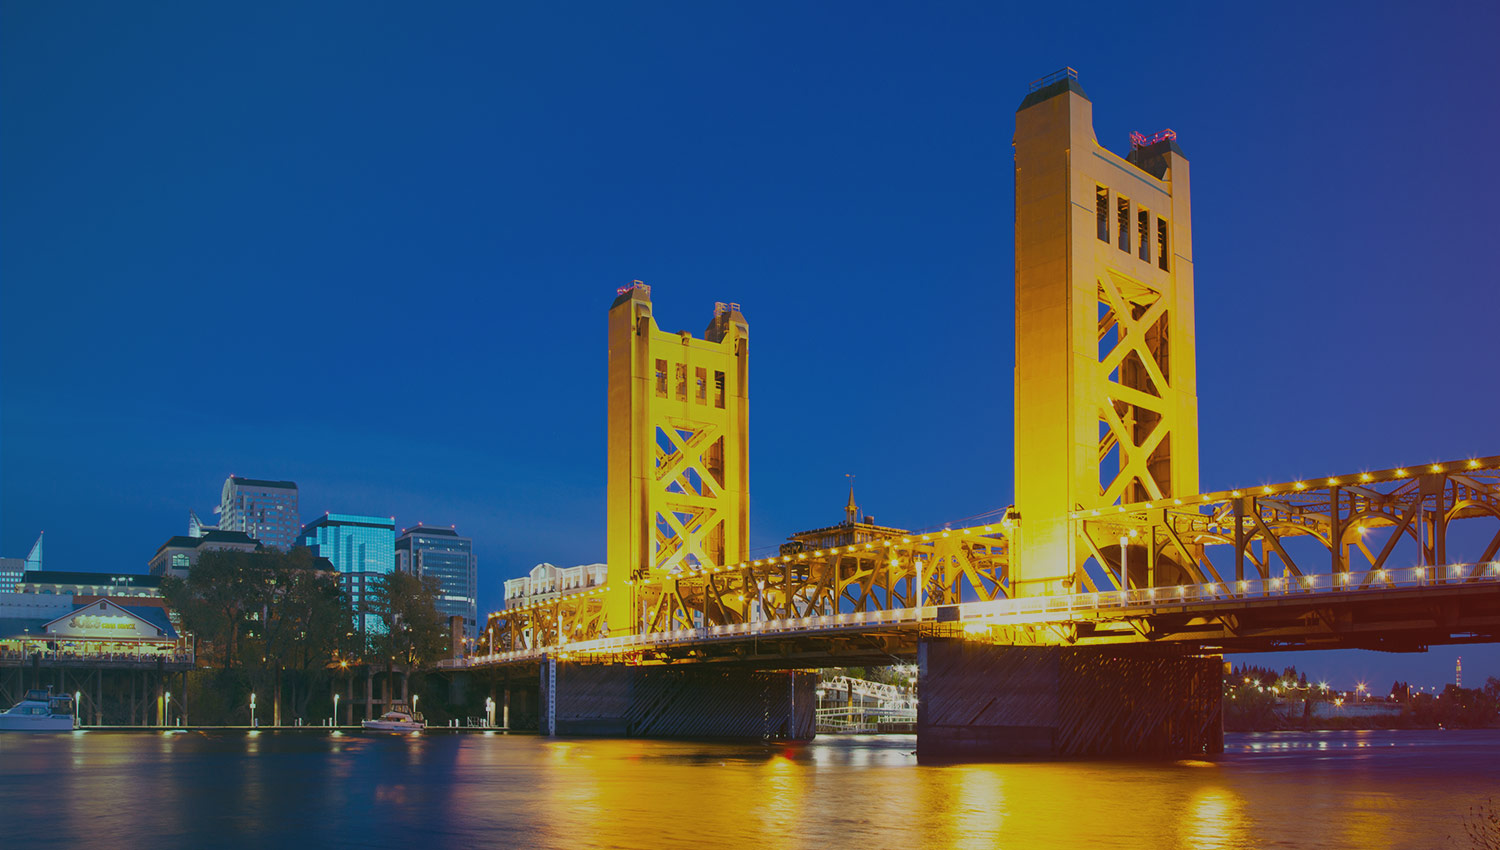 Sacramento's vibrant nightlife, restaurants,  and breweries are all nearby